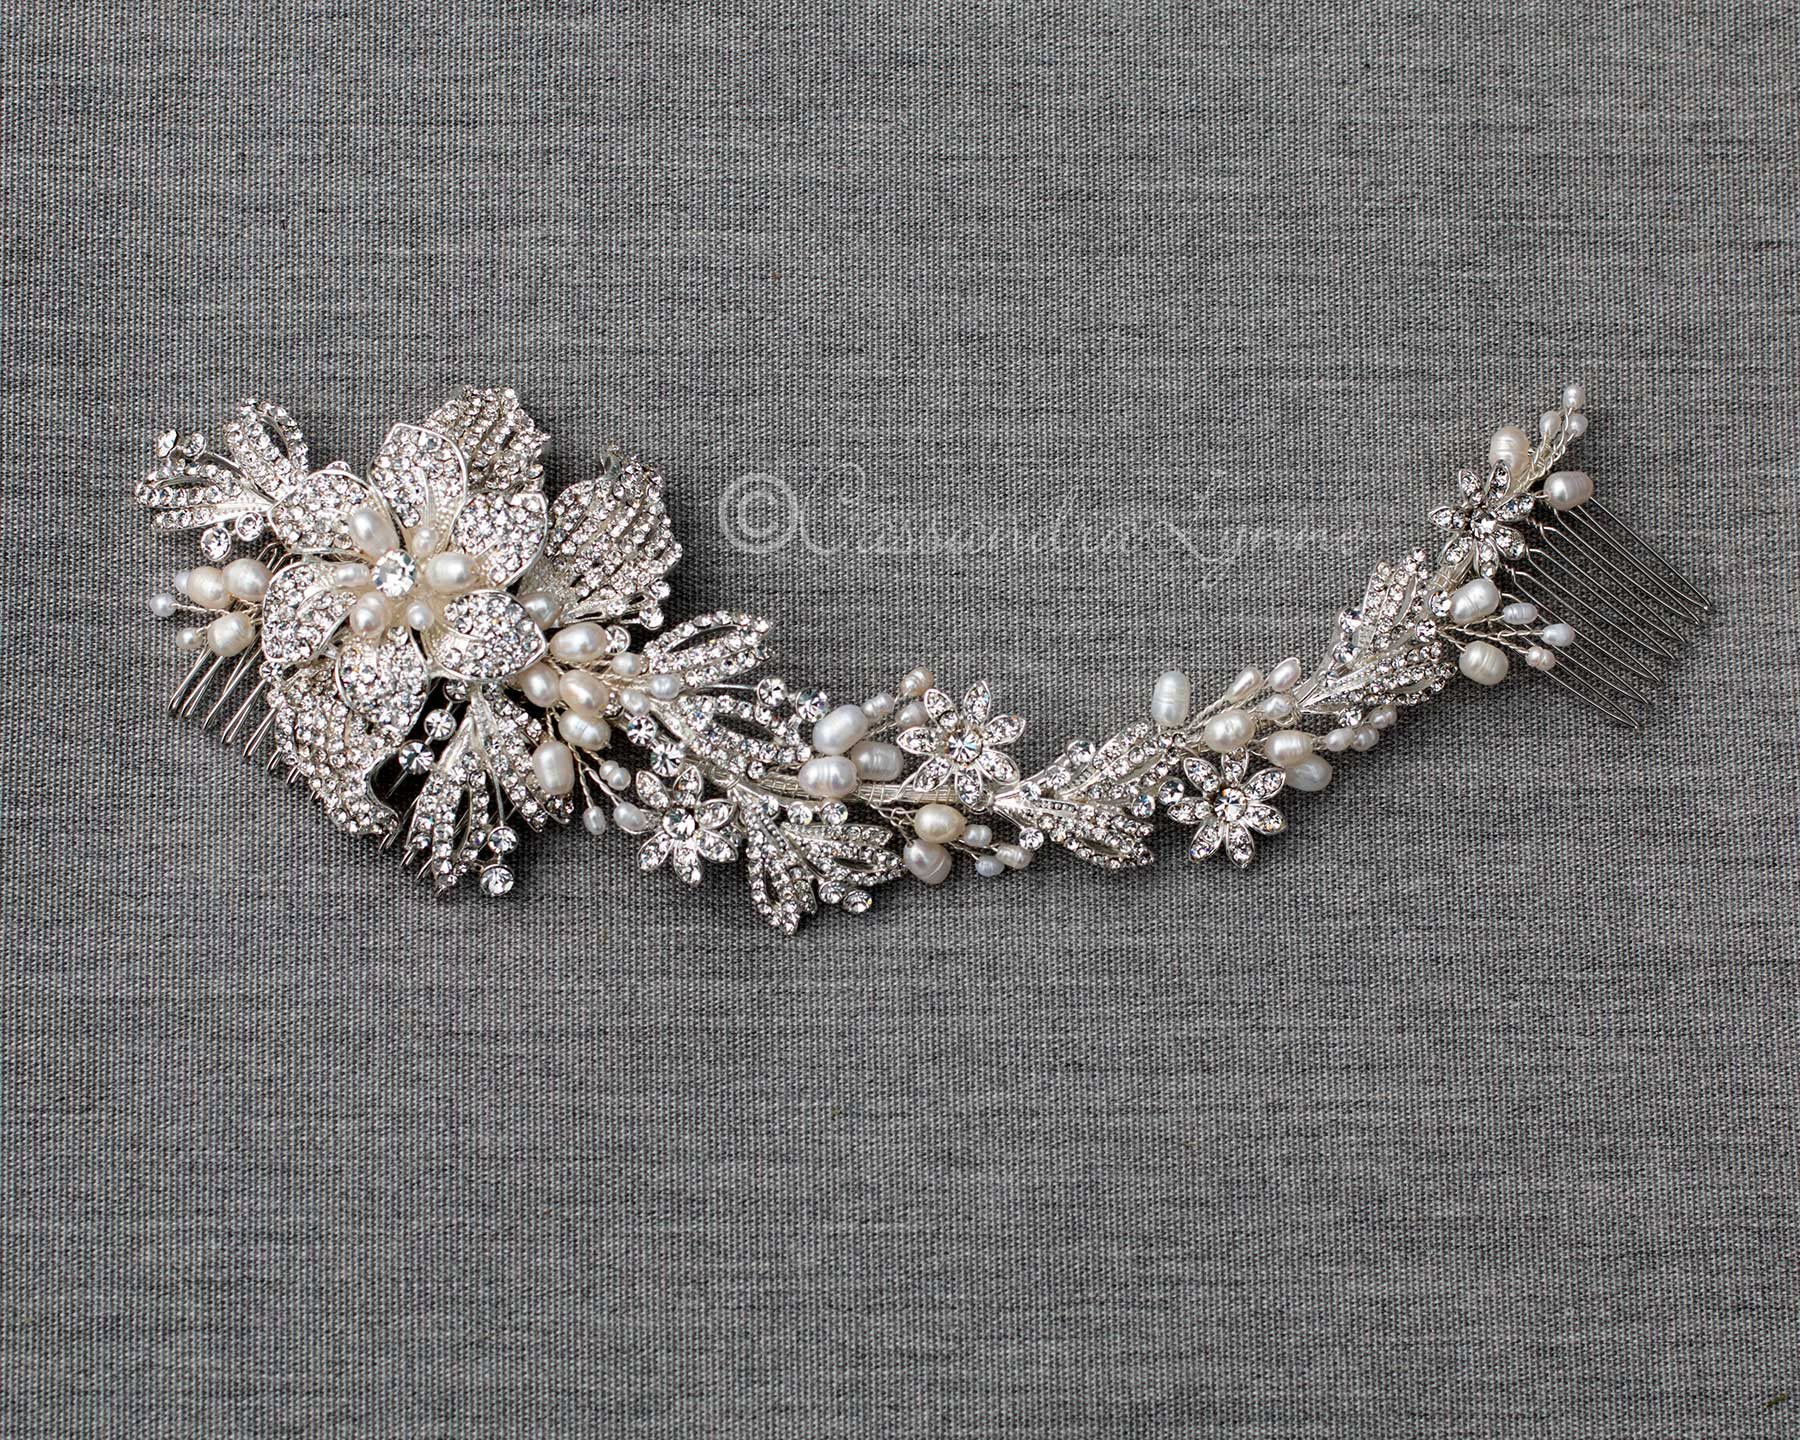 Crystal and Pearl Headpiece for the Bride